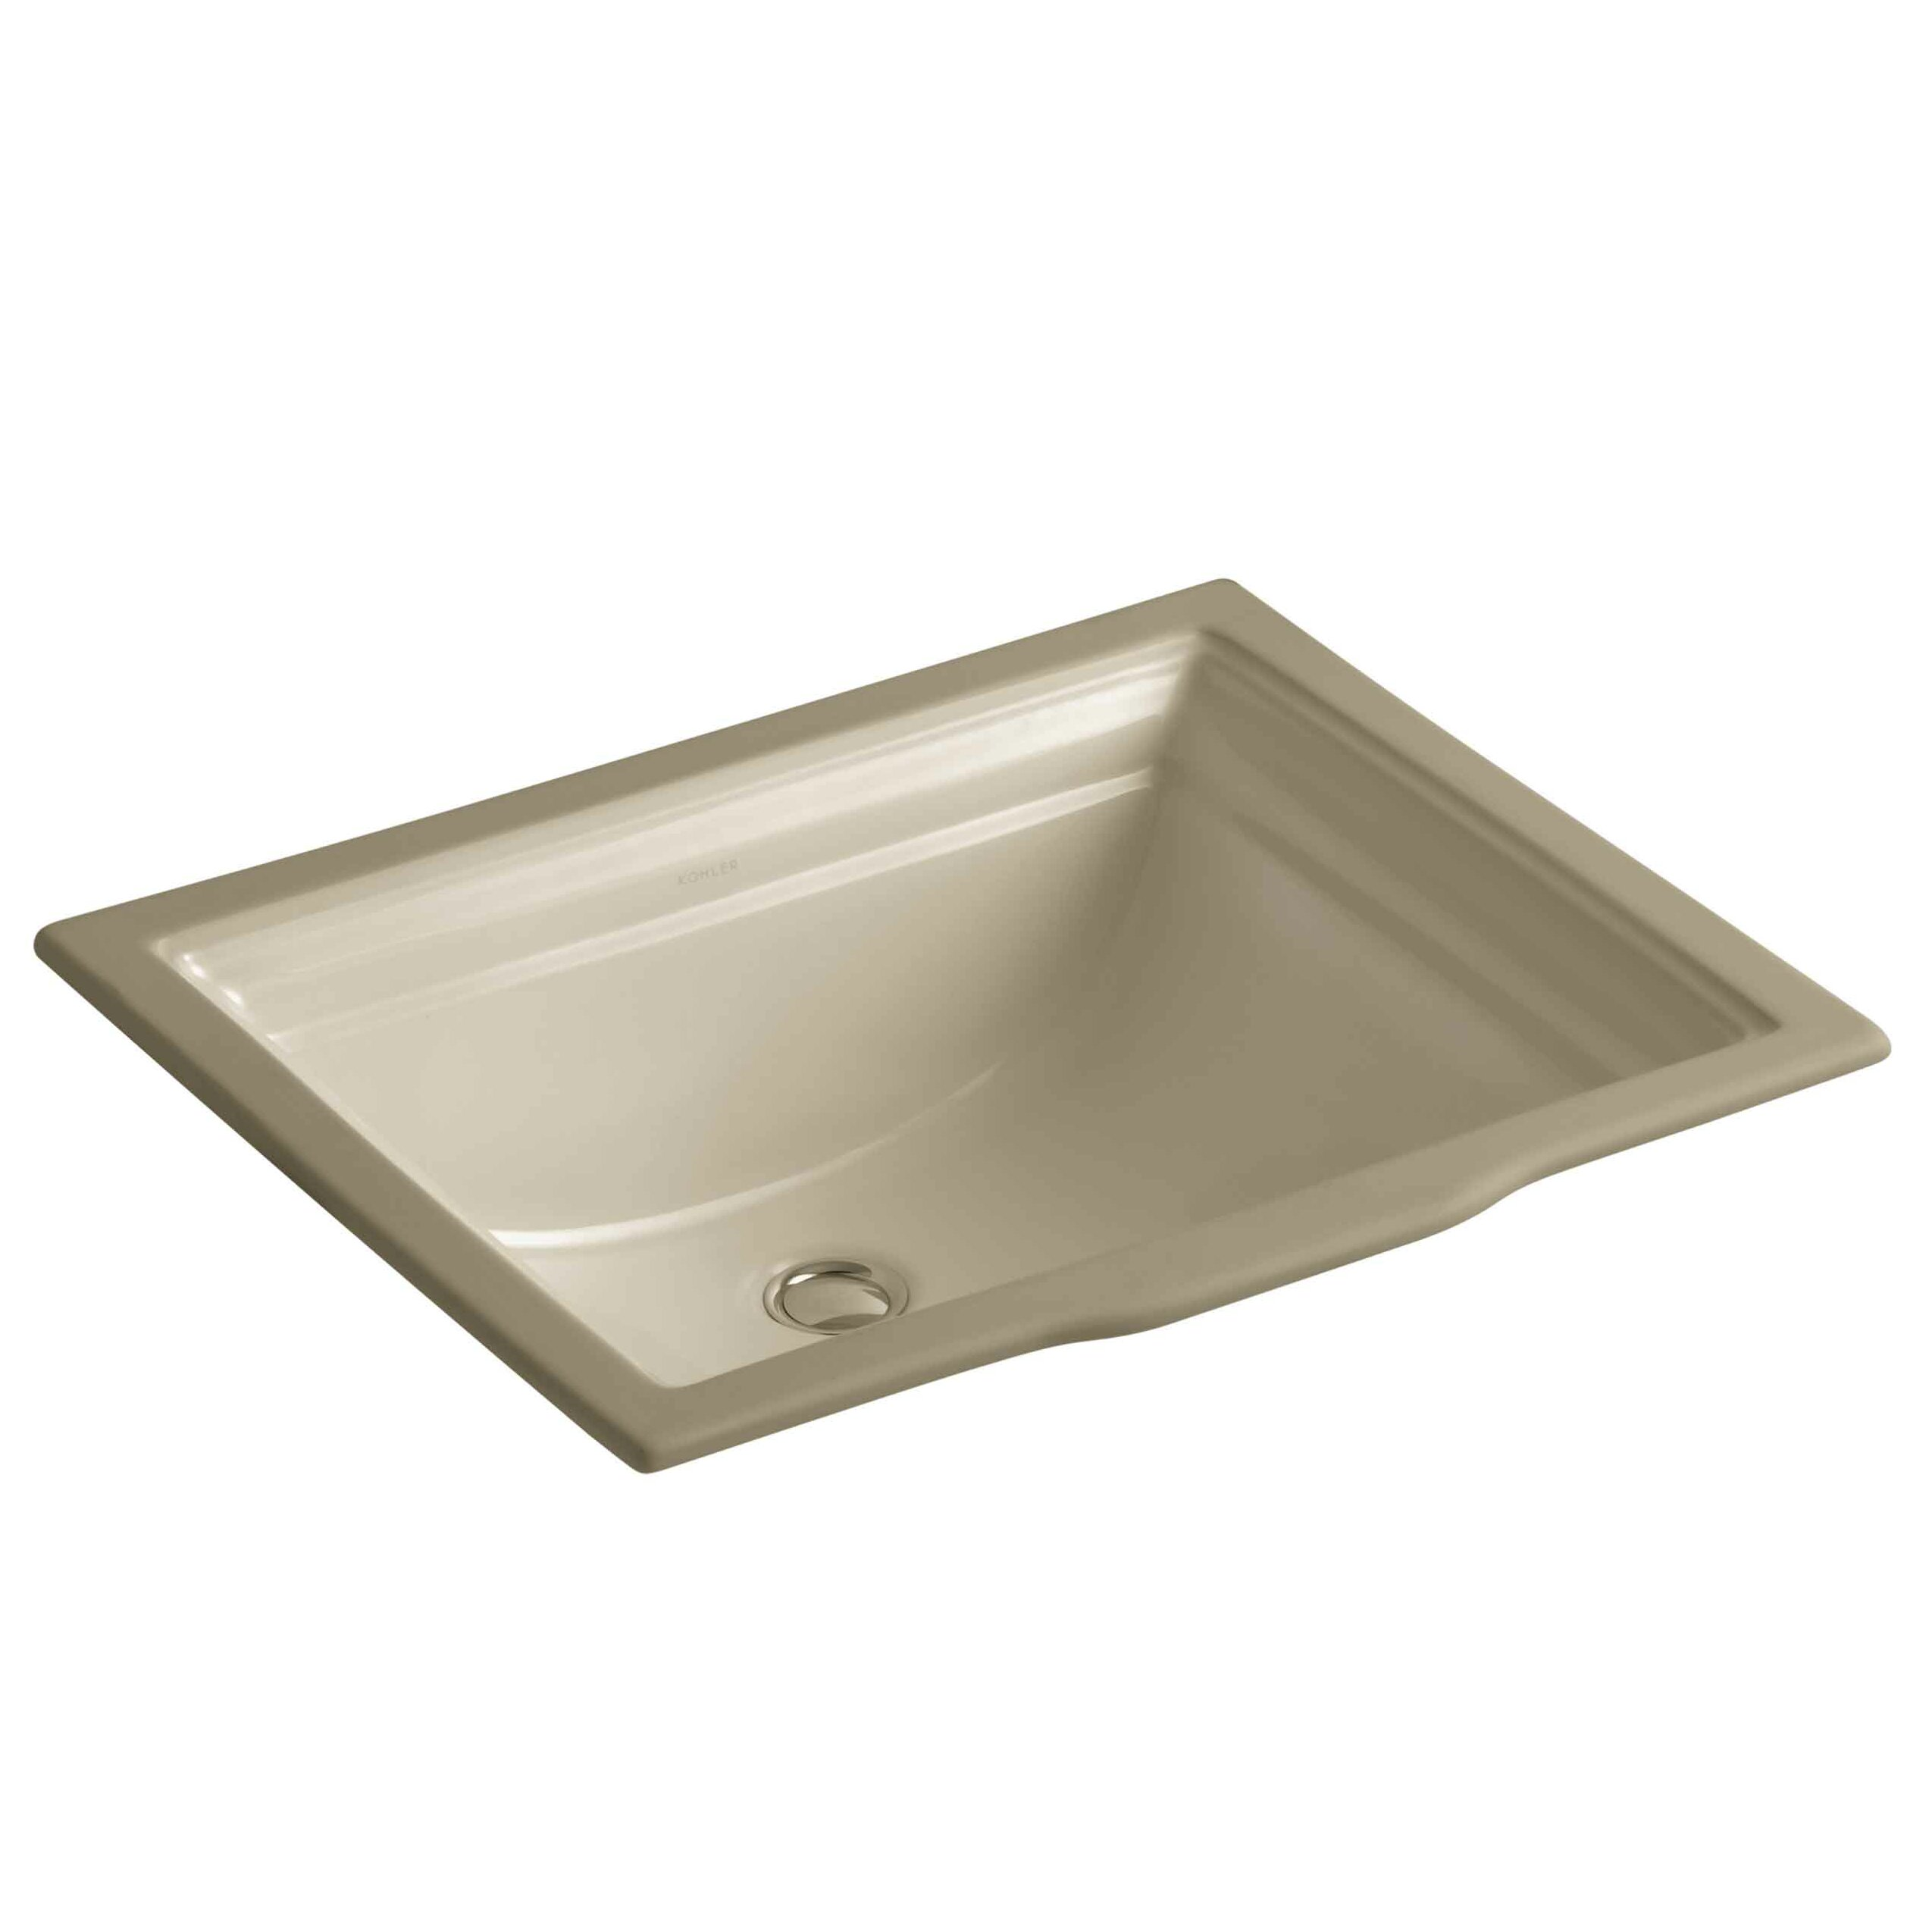 ... Improvement Bathroom Fixtures ... Kohler Part #: K-2339 SKU: KOH2495